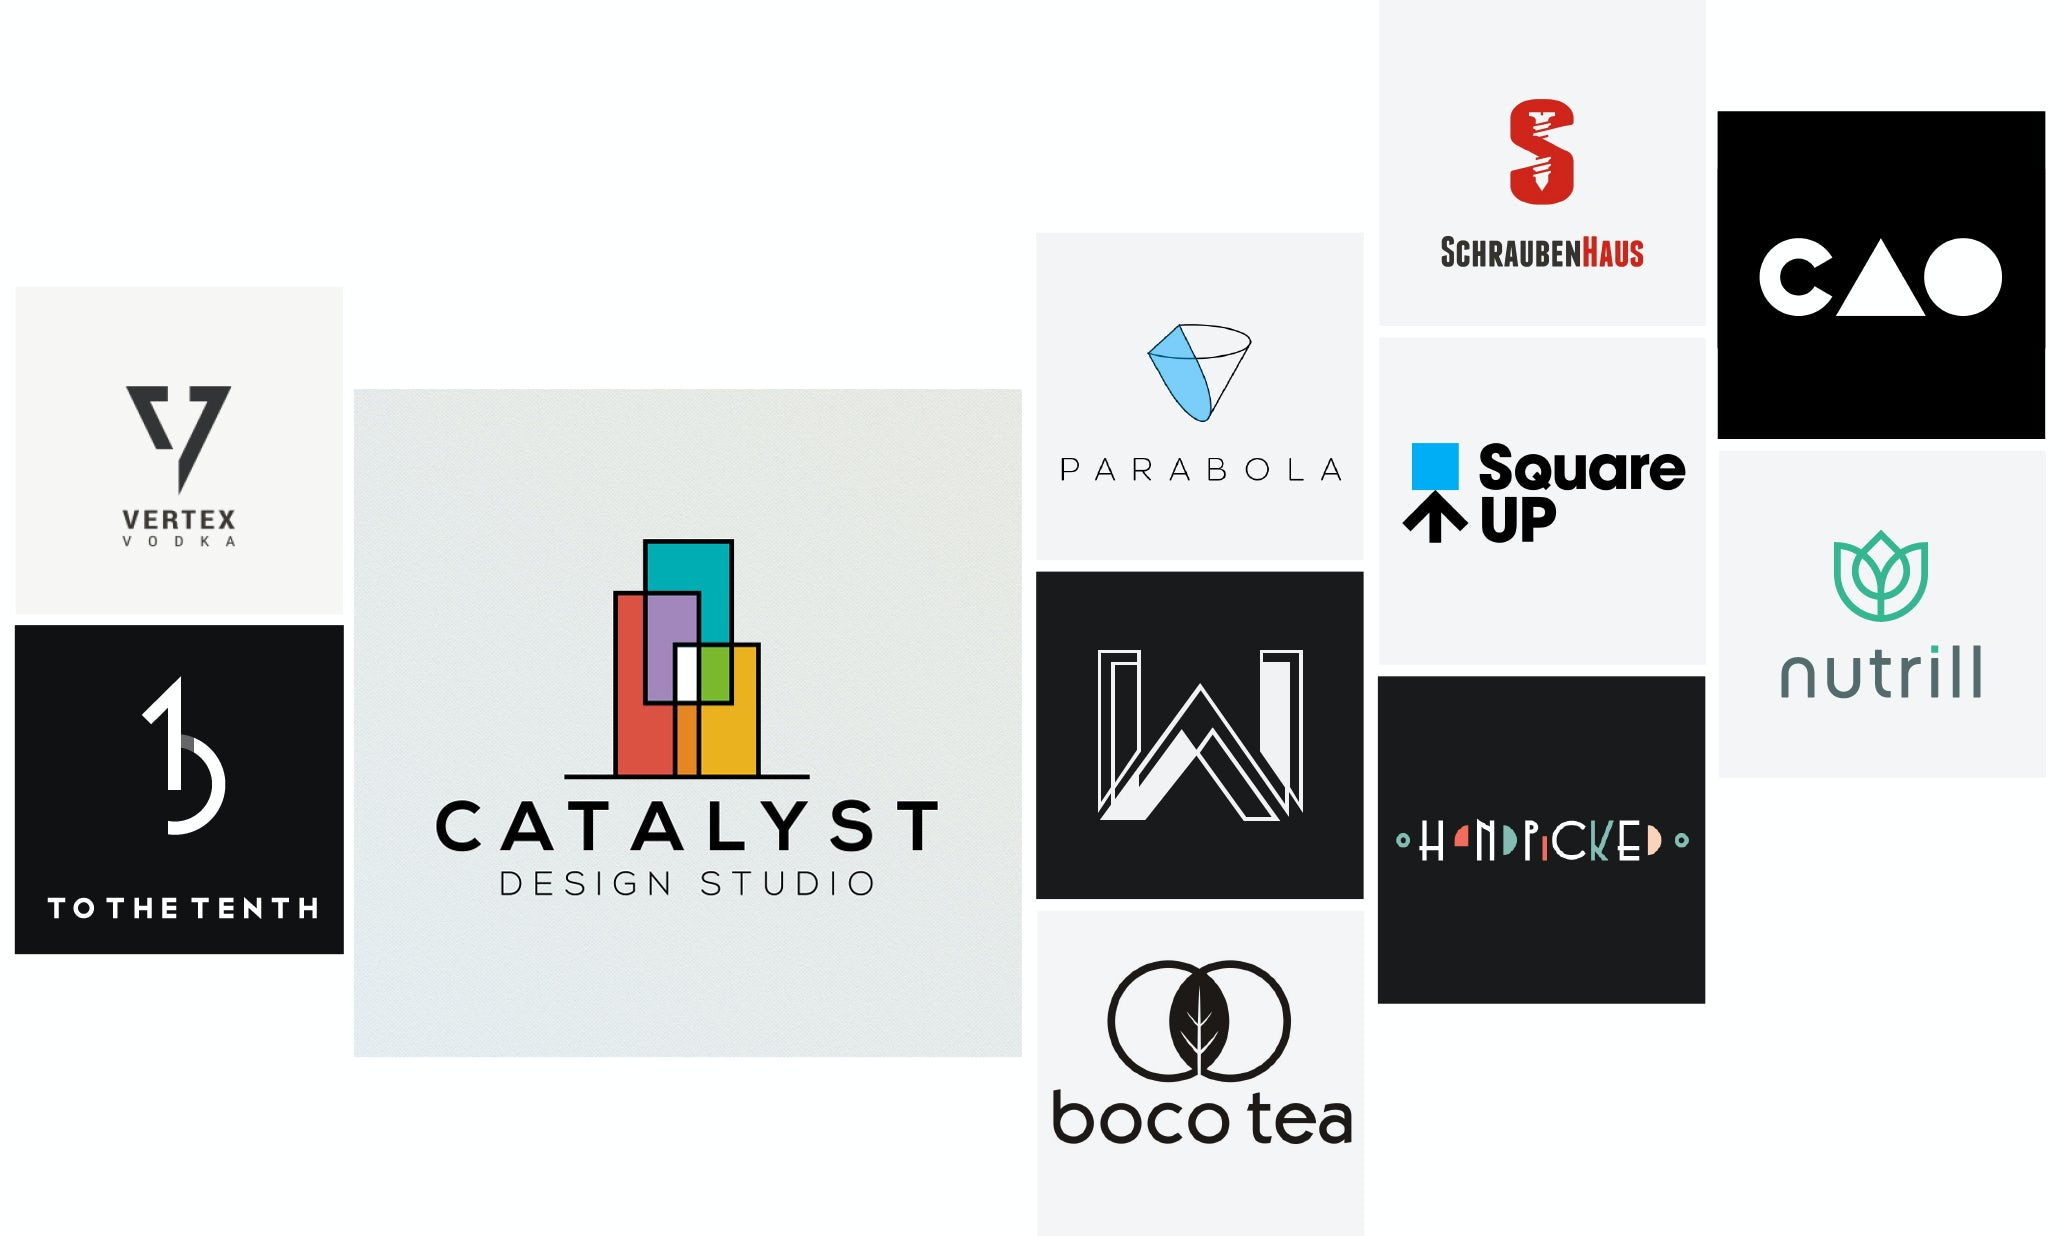 27 modern logos that revolutionize the past - 99designs